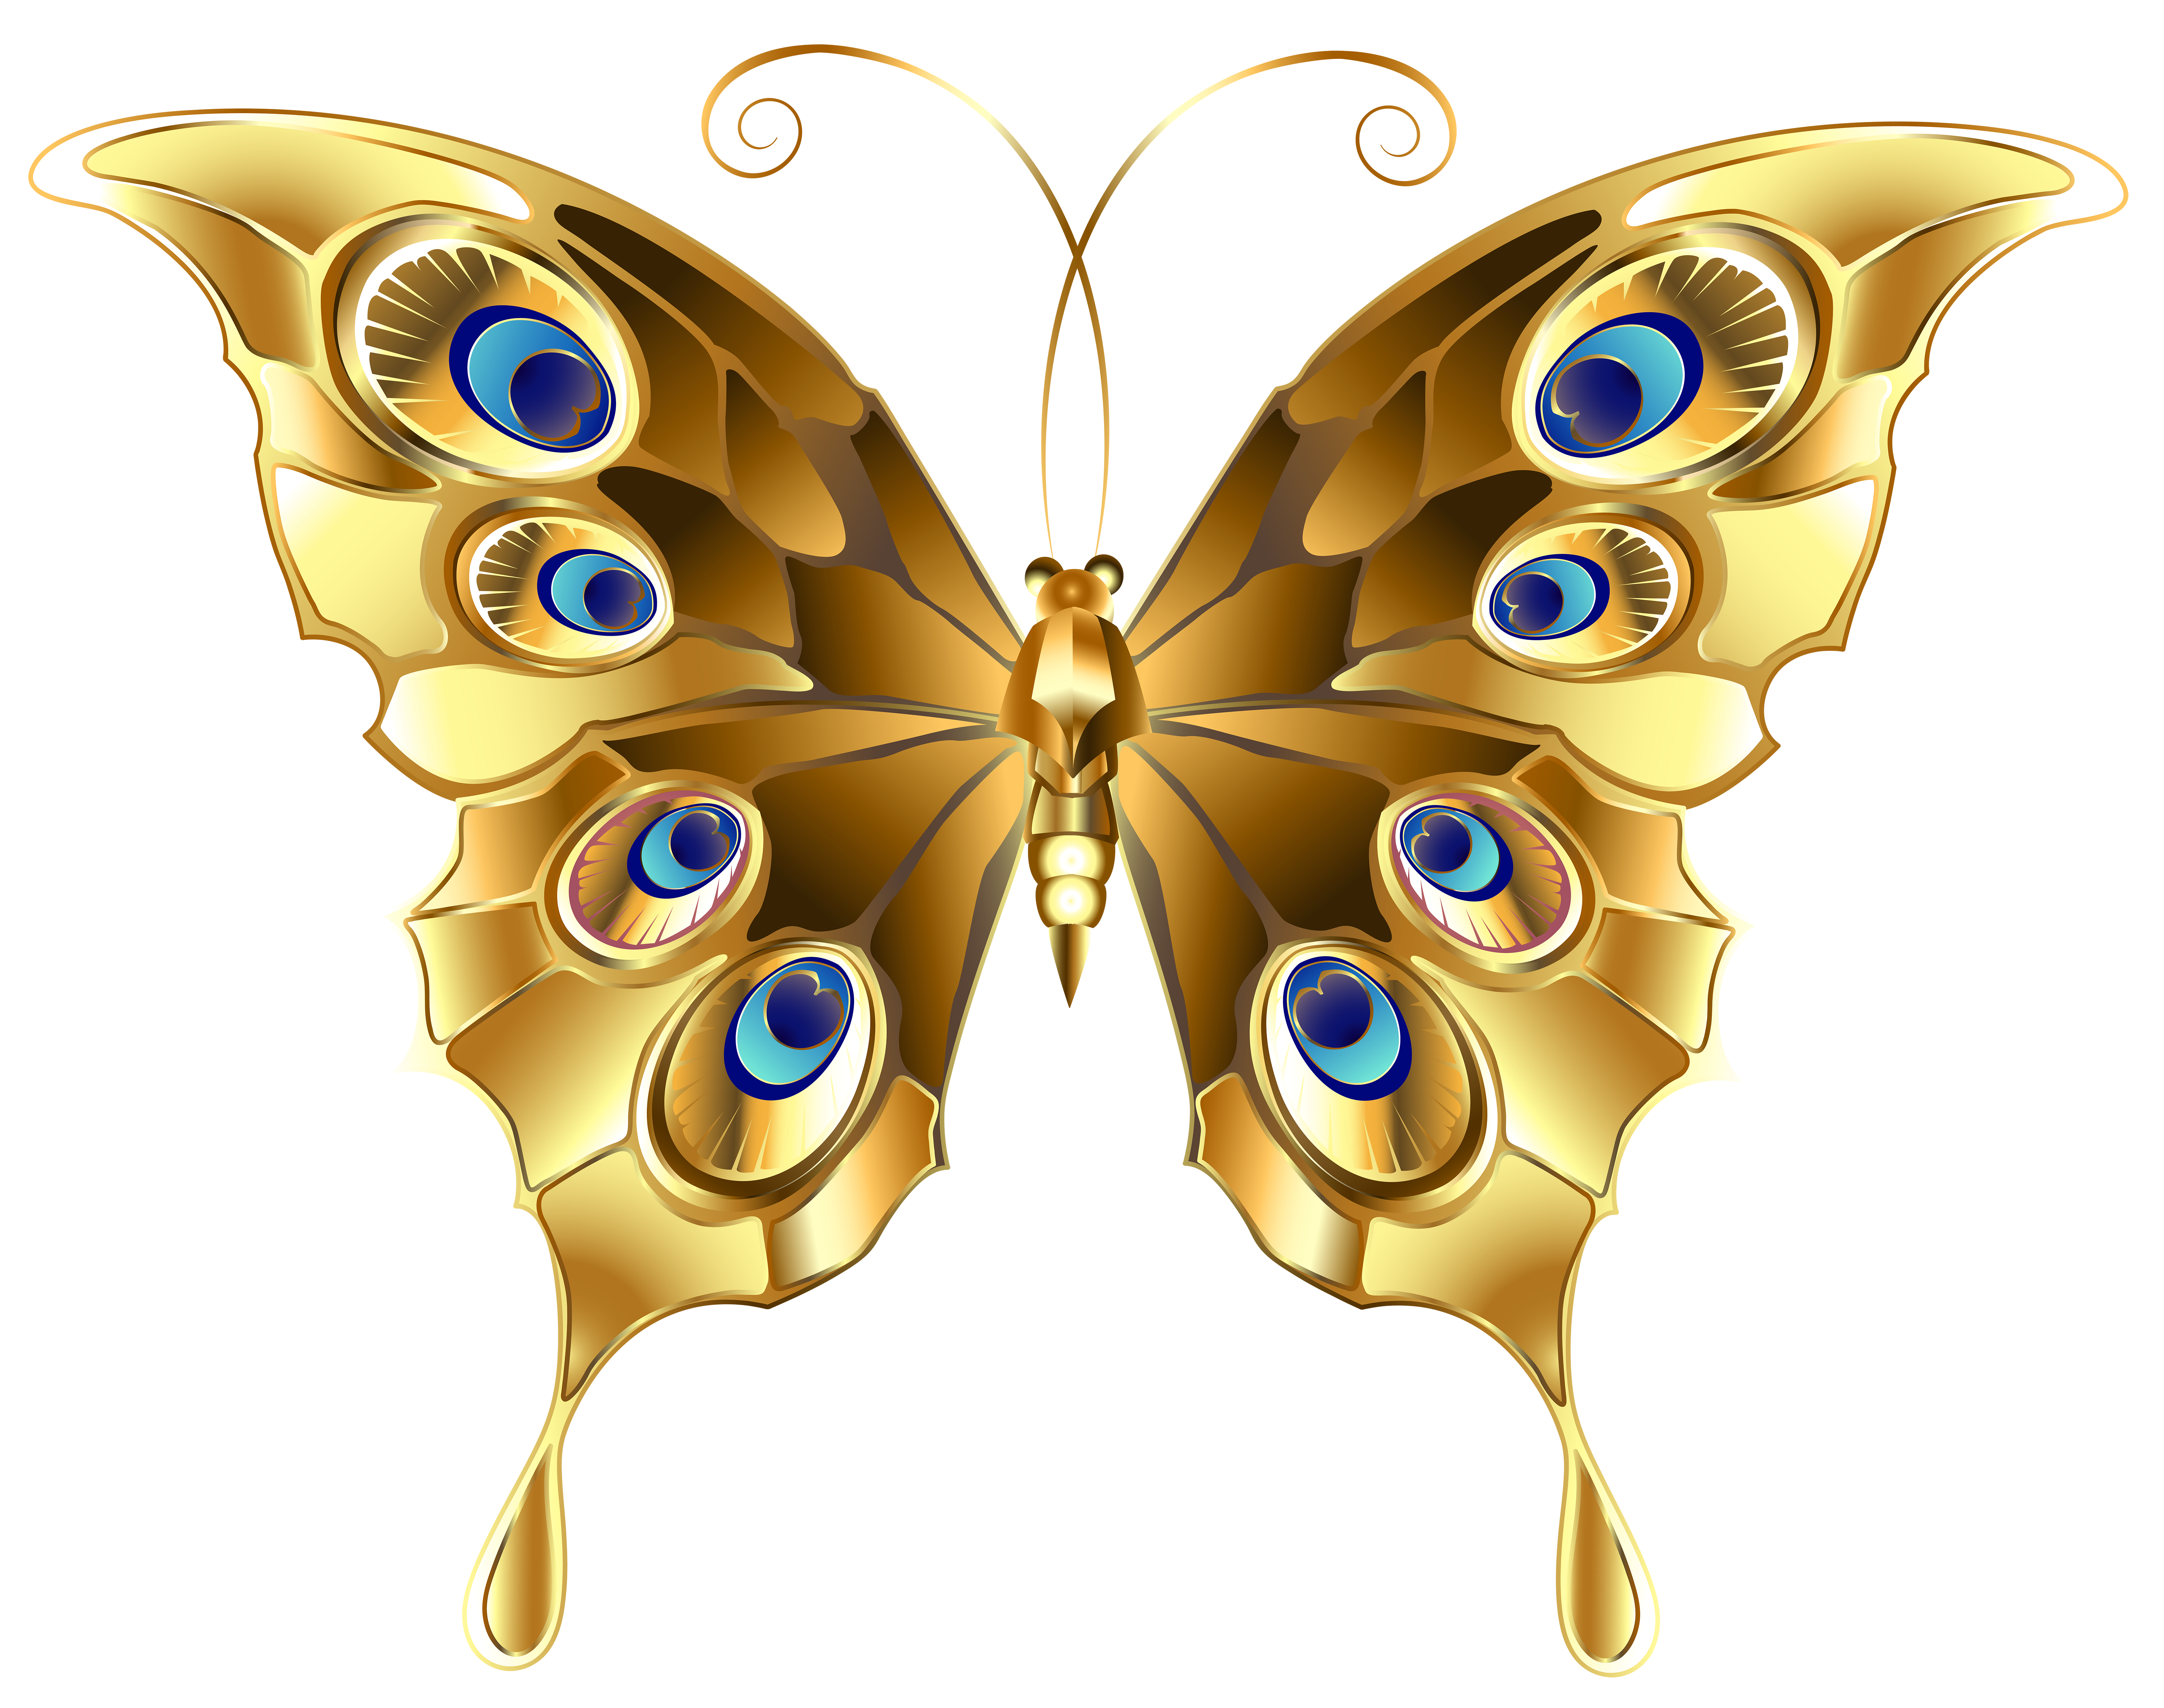 Gold clip art image. Butterfly png images